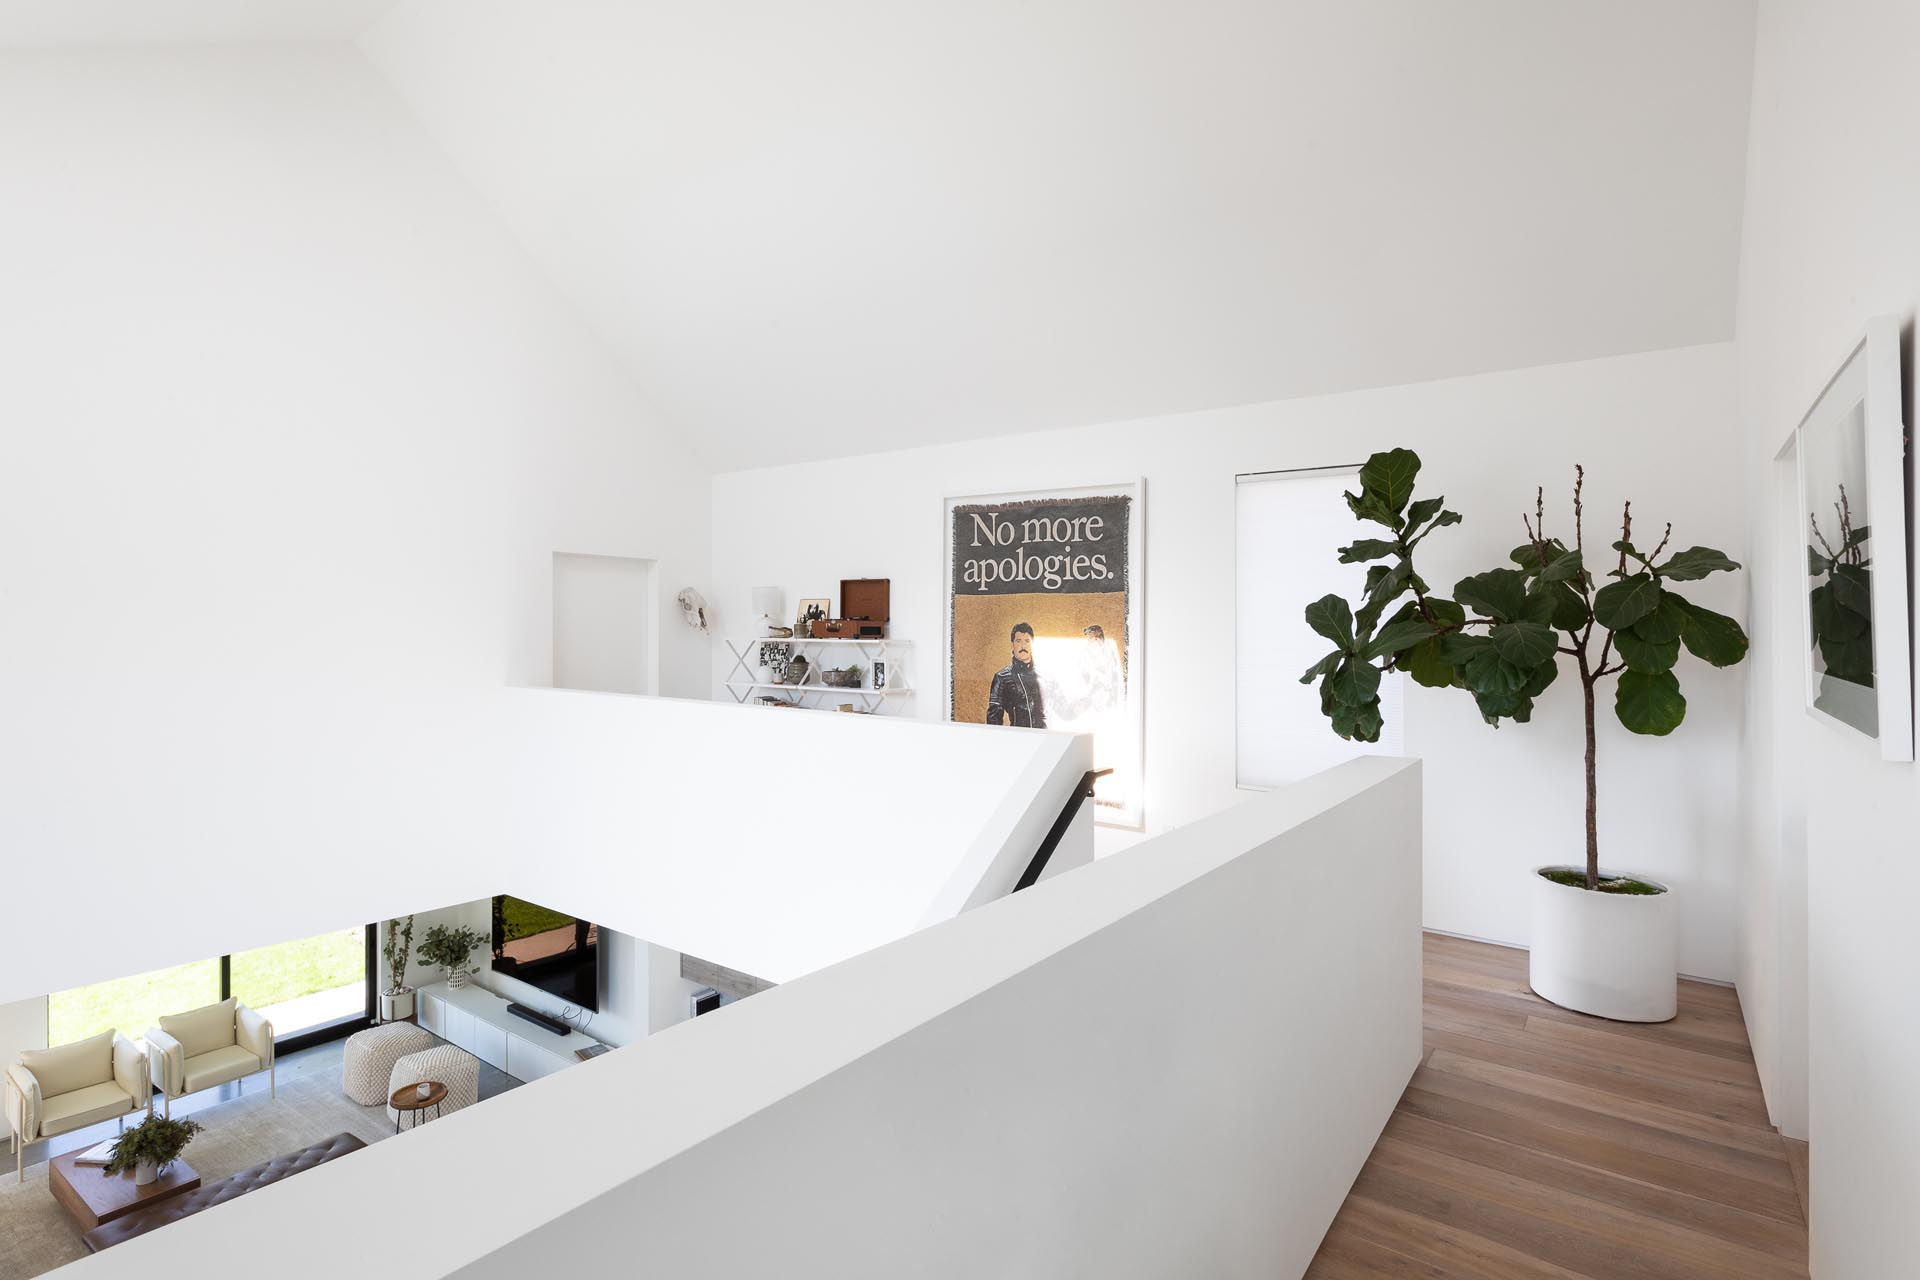 At the top of the stairs in this modern home, there's an open hallway with wood flooring, a tall plant in the corner, artwork, and shelving.